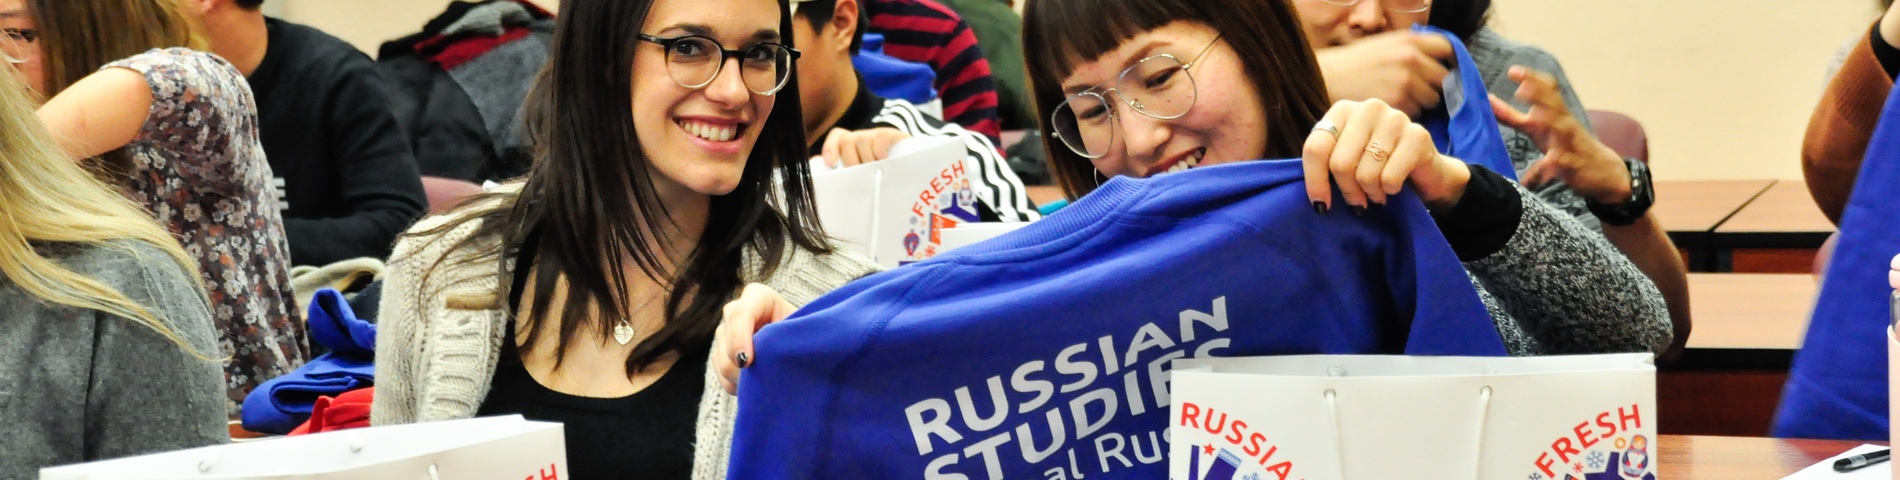 Russian Studies in Real Russia immagine 1